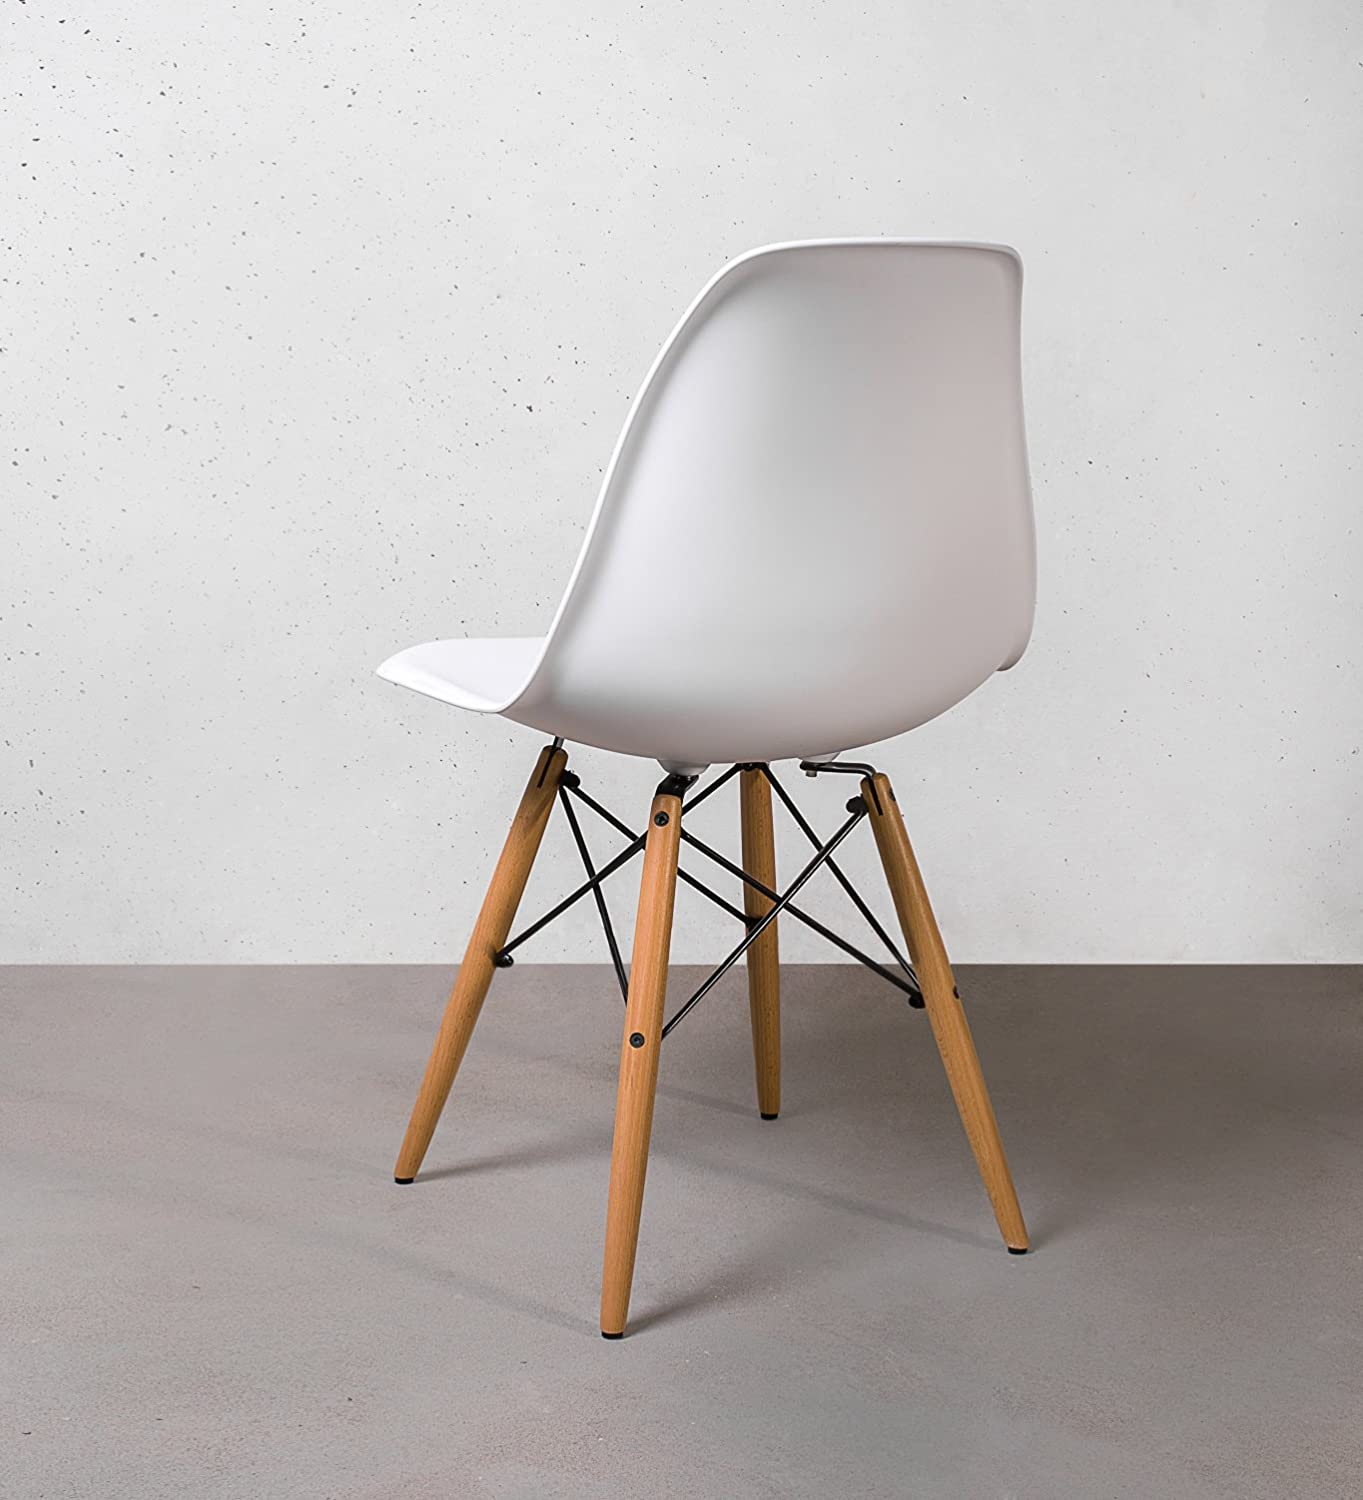 Three Popular Restaurant Chair Types - Wooden, Metal and Plastic ...